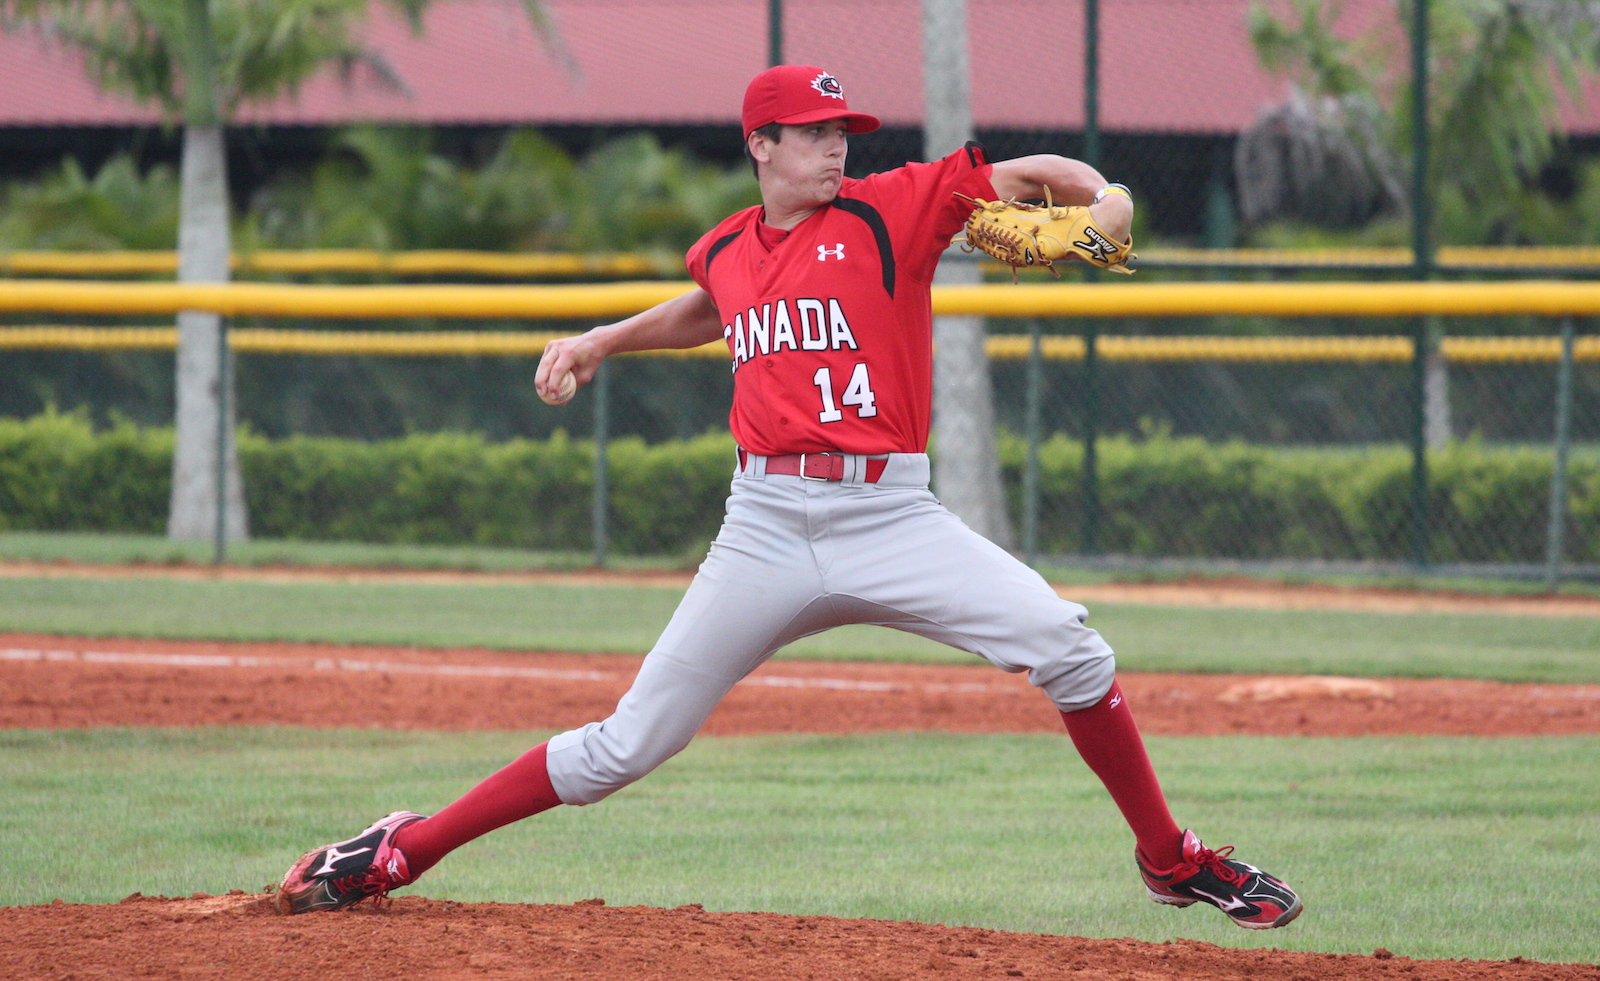 Junior National Team alum Cal Quantrill (Port Hope, Ont.) will make his major league debut with the San Diego Padres tonight. Photo: Baseball Canada